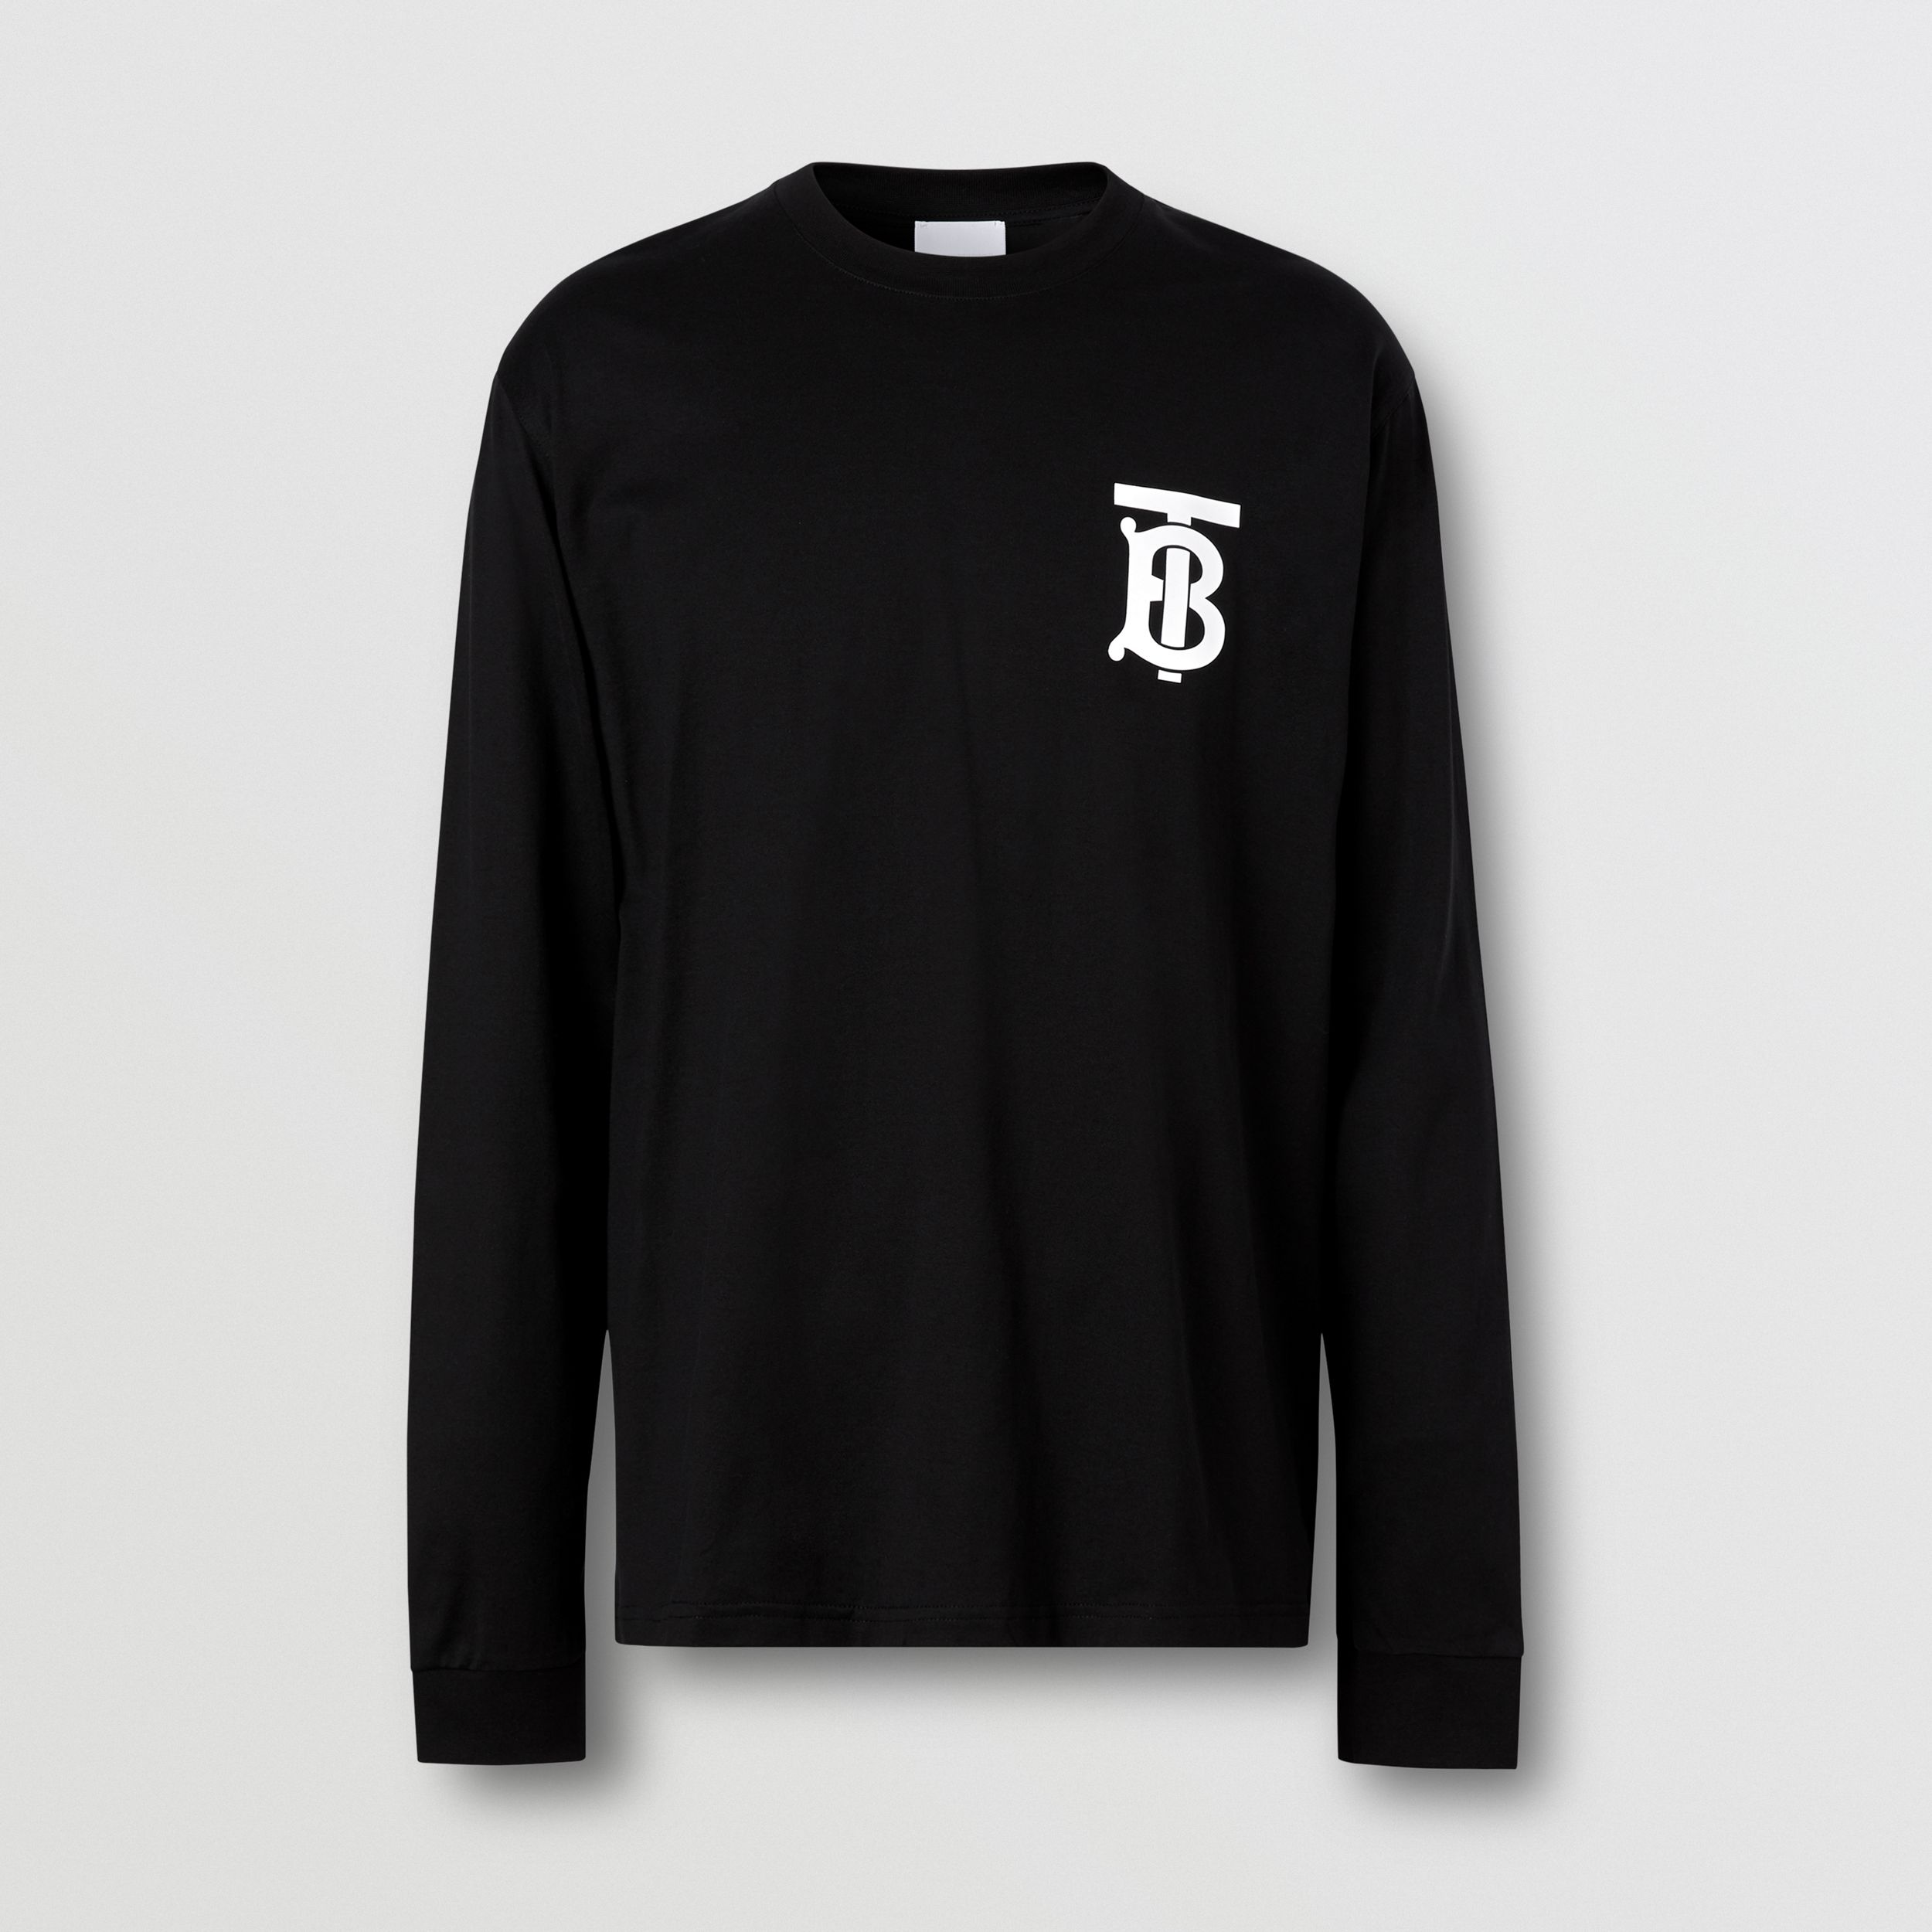 Long-sleeve Monogram Motif Cotton Top in Black - Men | Burberry Hong Kong S.A.R. - 4